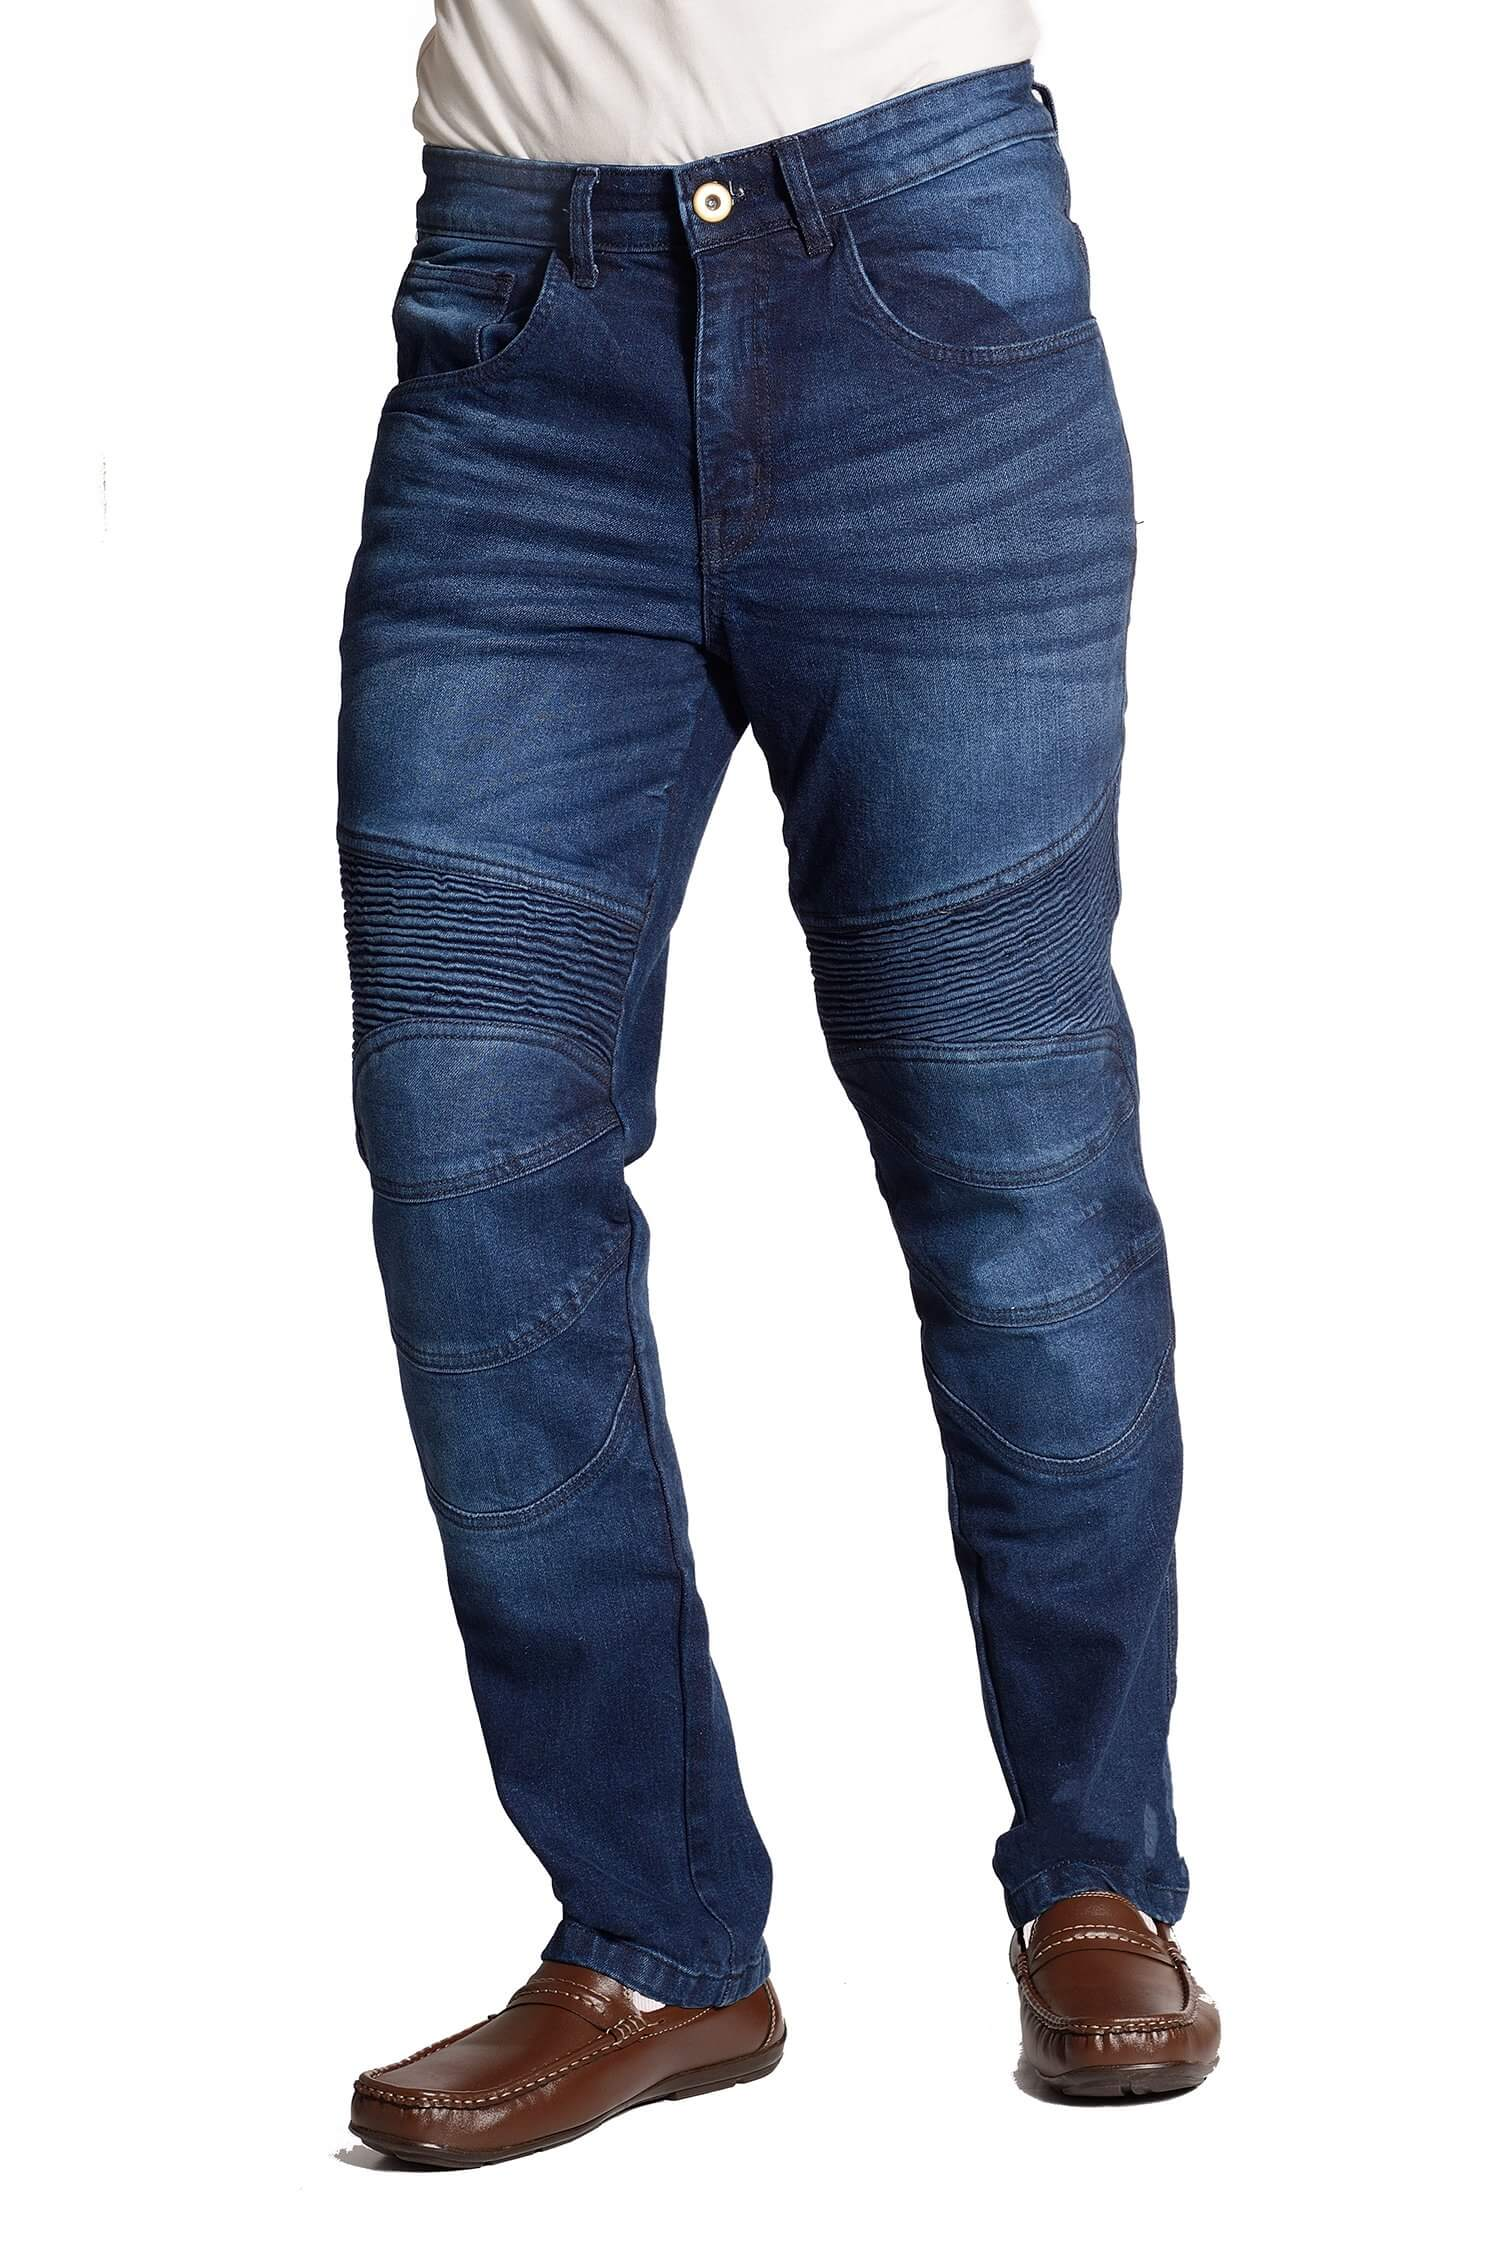 stretch-motorcycle-jeans-pants-11